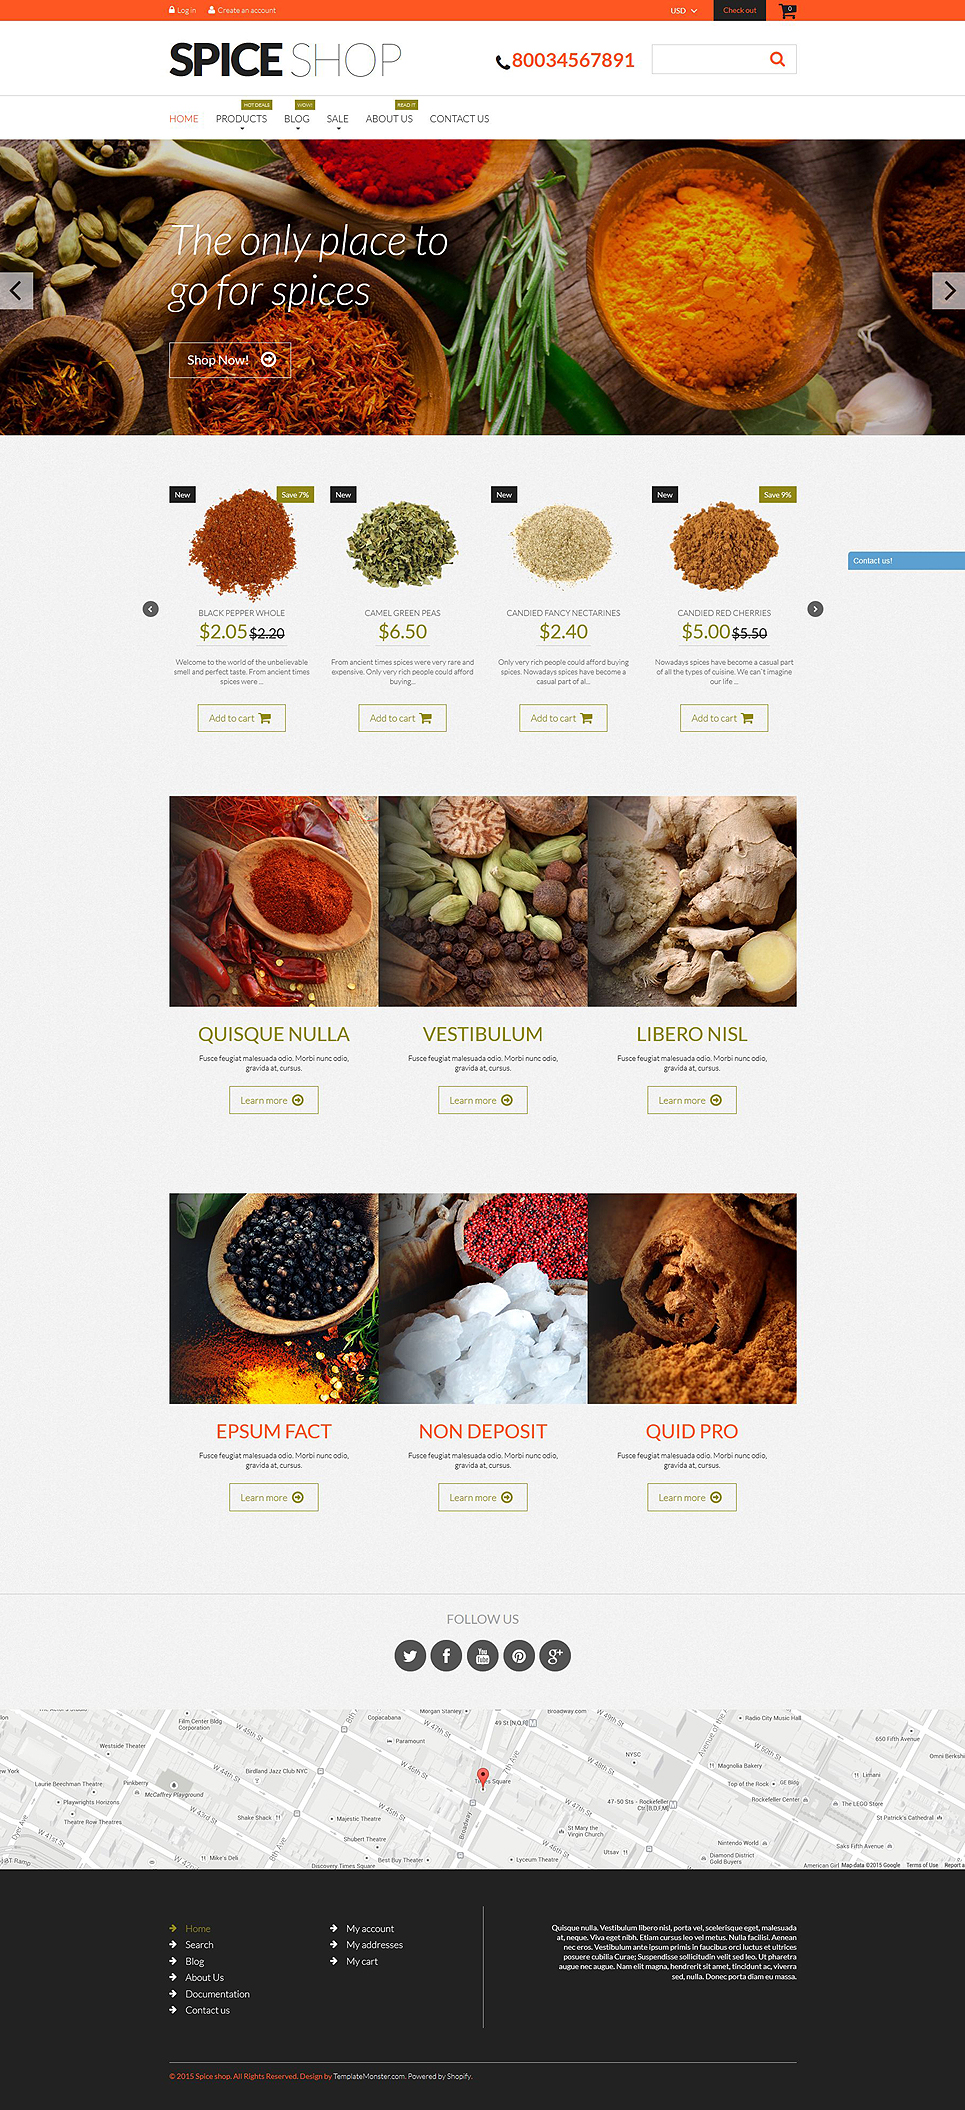 Spices Up Your Life (website theme) Item Picture